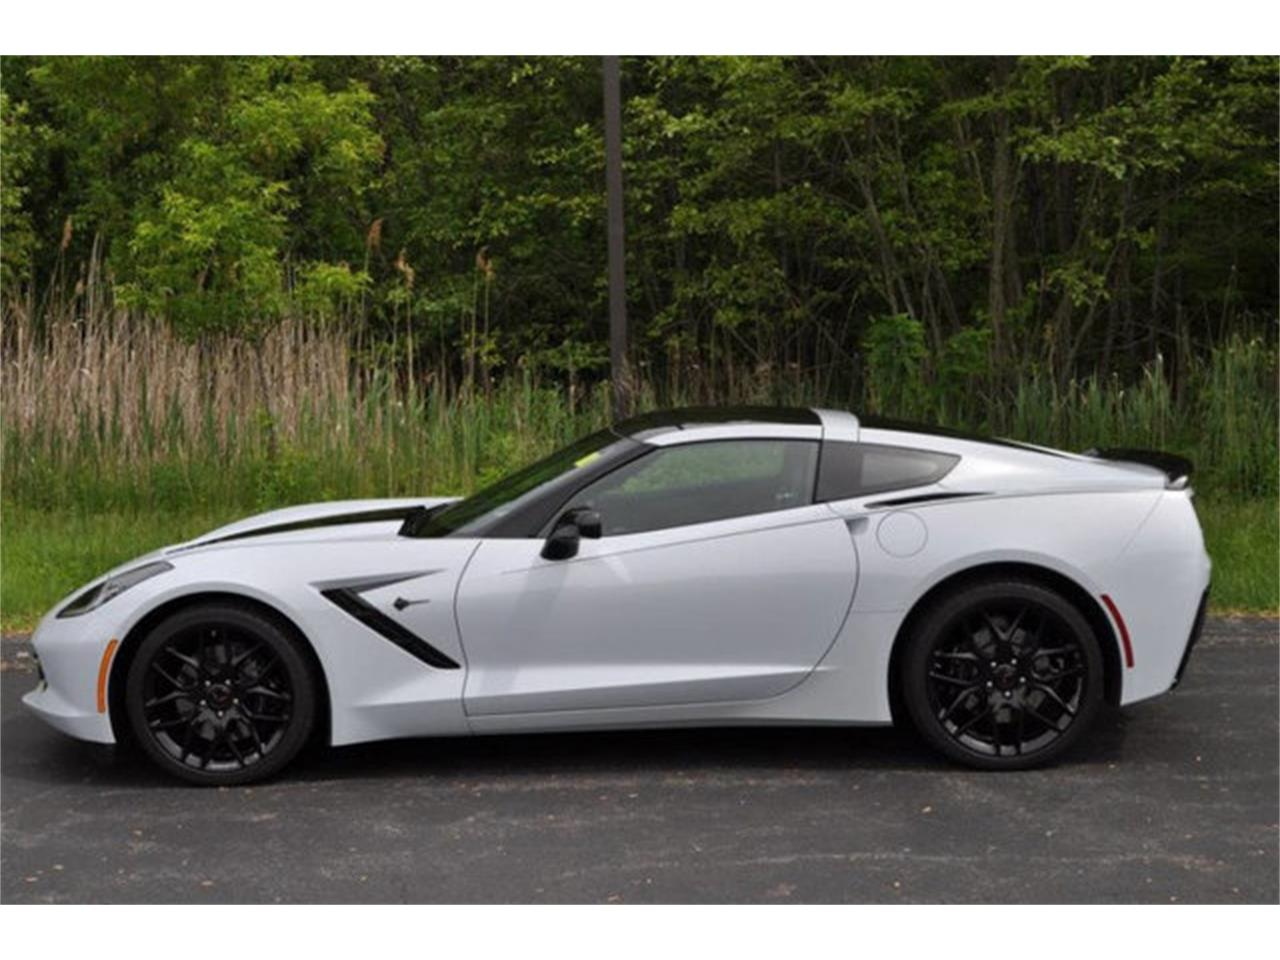 Large Picture of '18 Chevrolet Corvette located in New York Offered by Prestige Motor Car Co. - QDOE